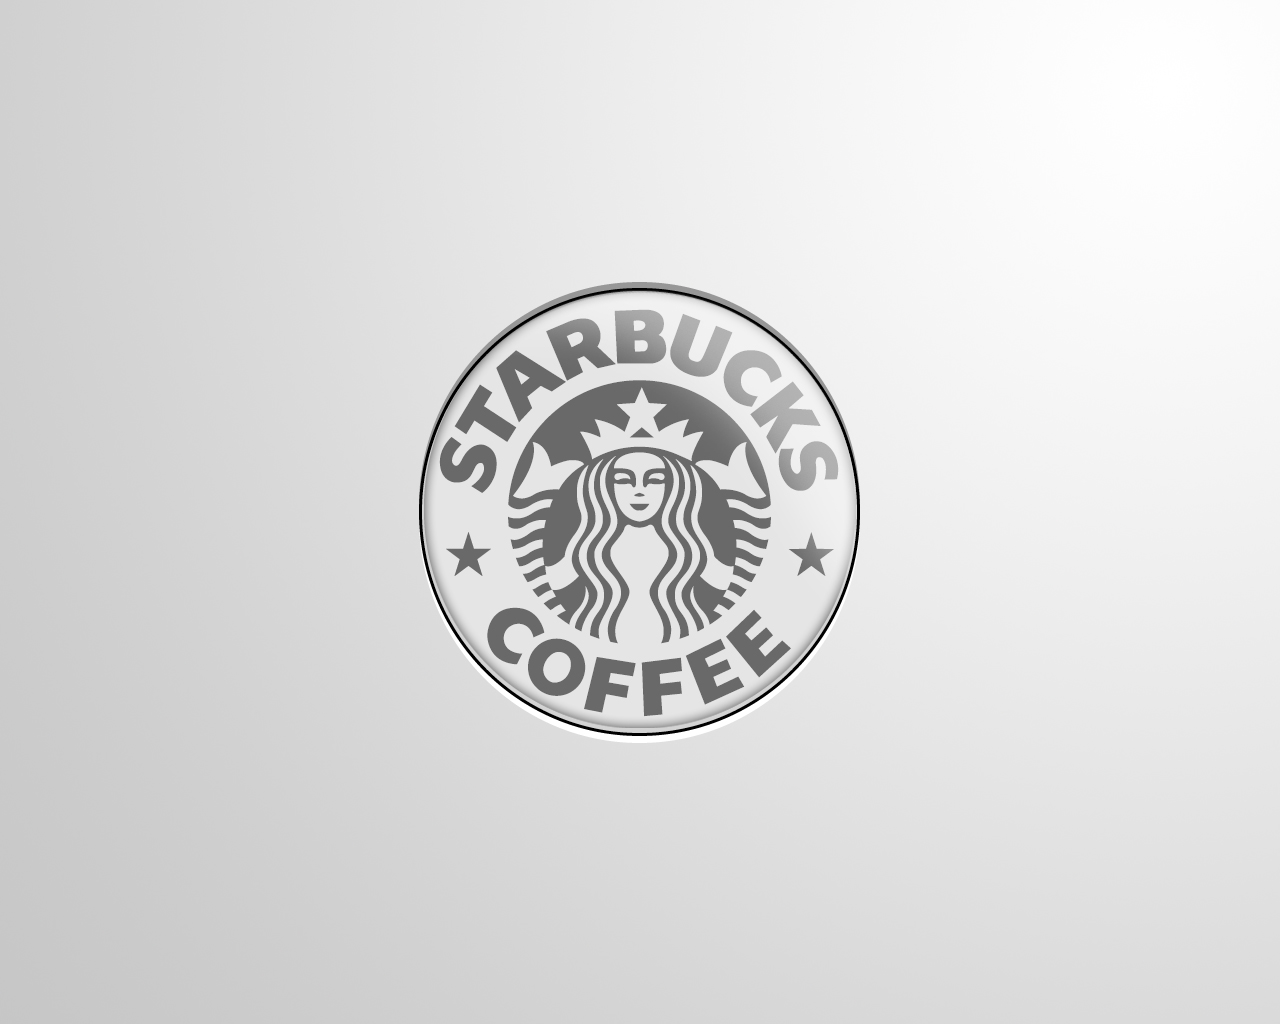 Starbucks by donkeybeatz